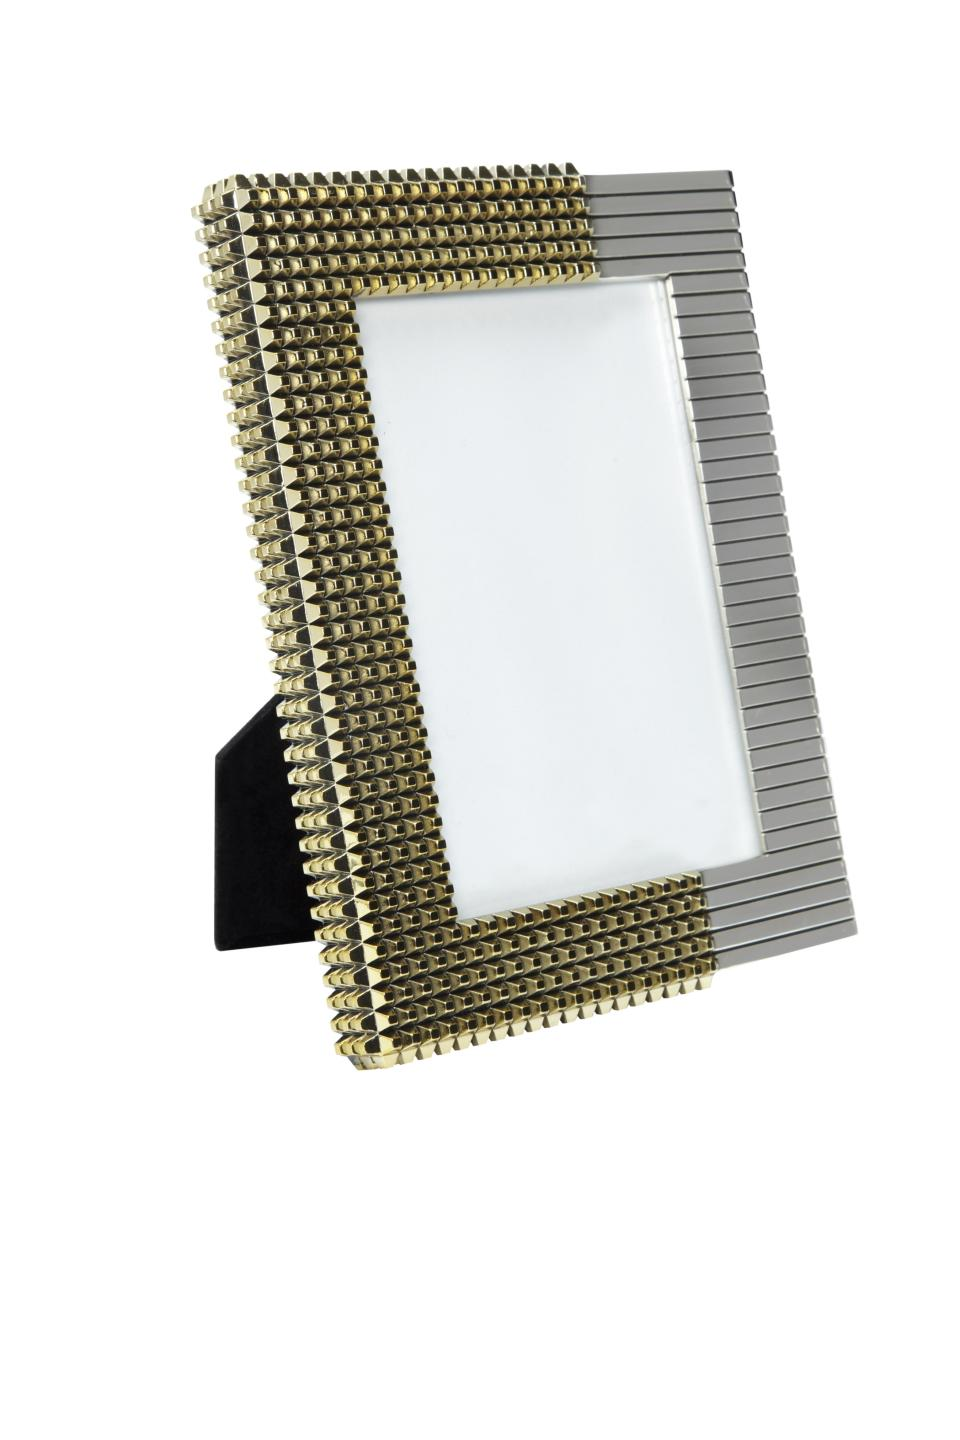 <b>Philip Crangi for Target + Neiman Marcus Holiday Collection Frame</b><br><br> Price: $49.99<br><br>